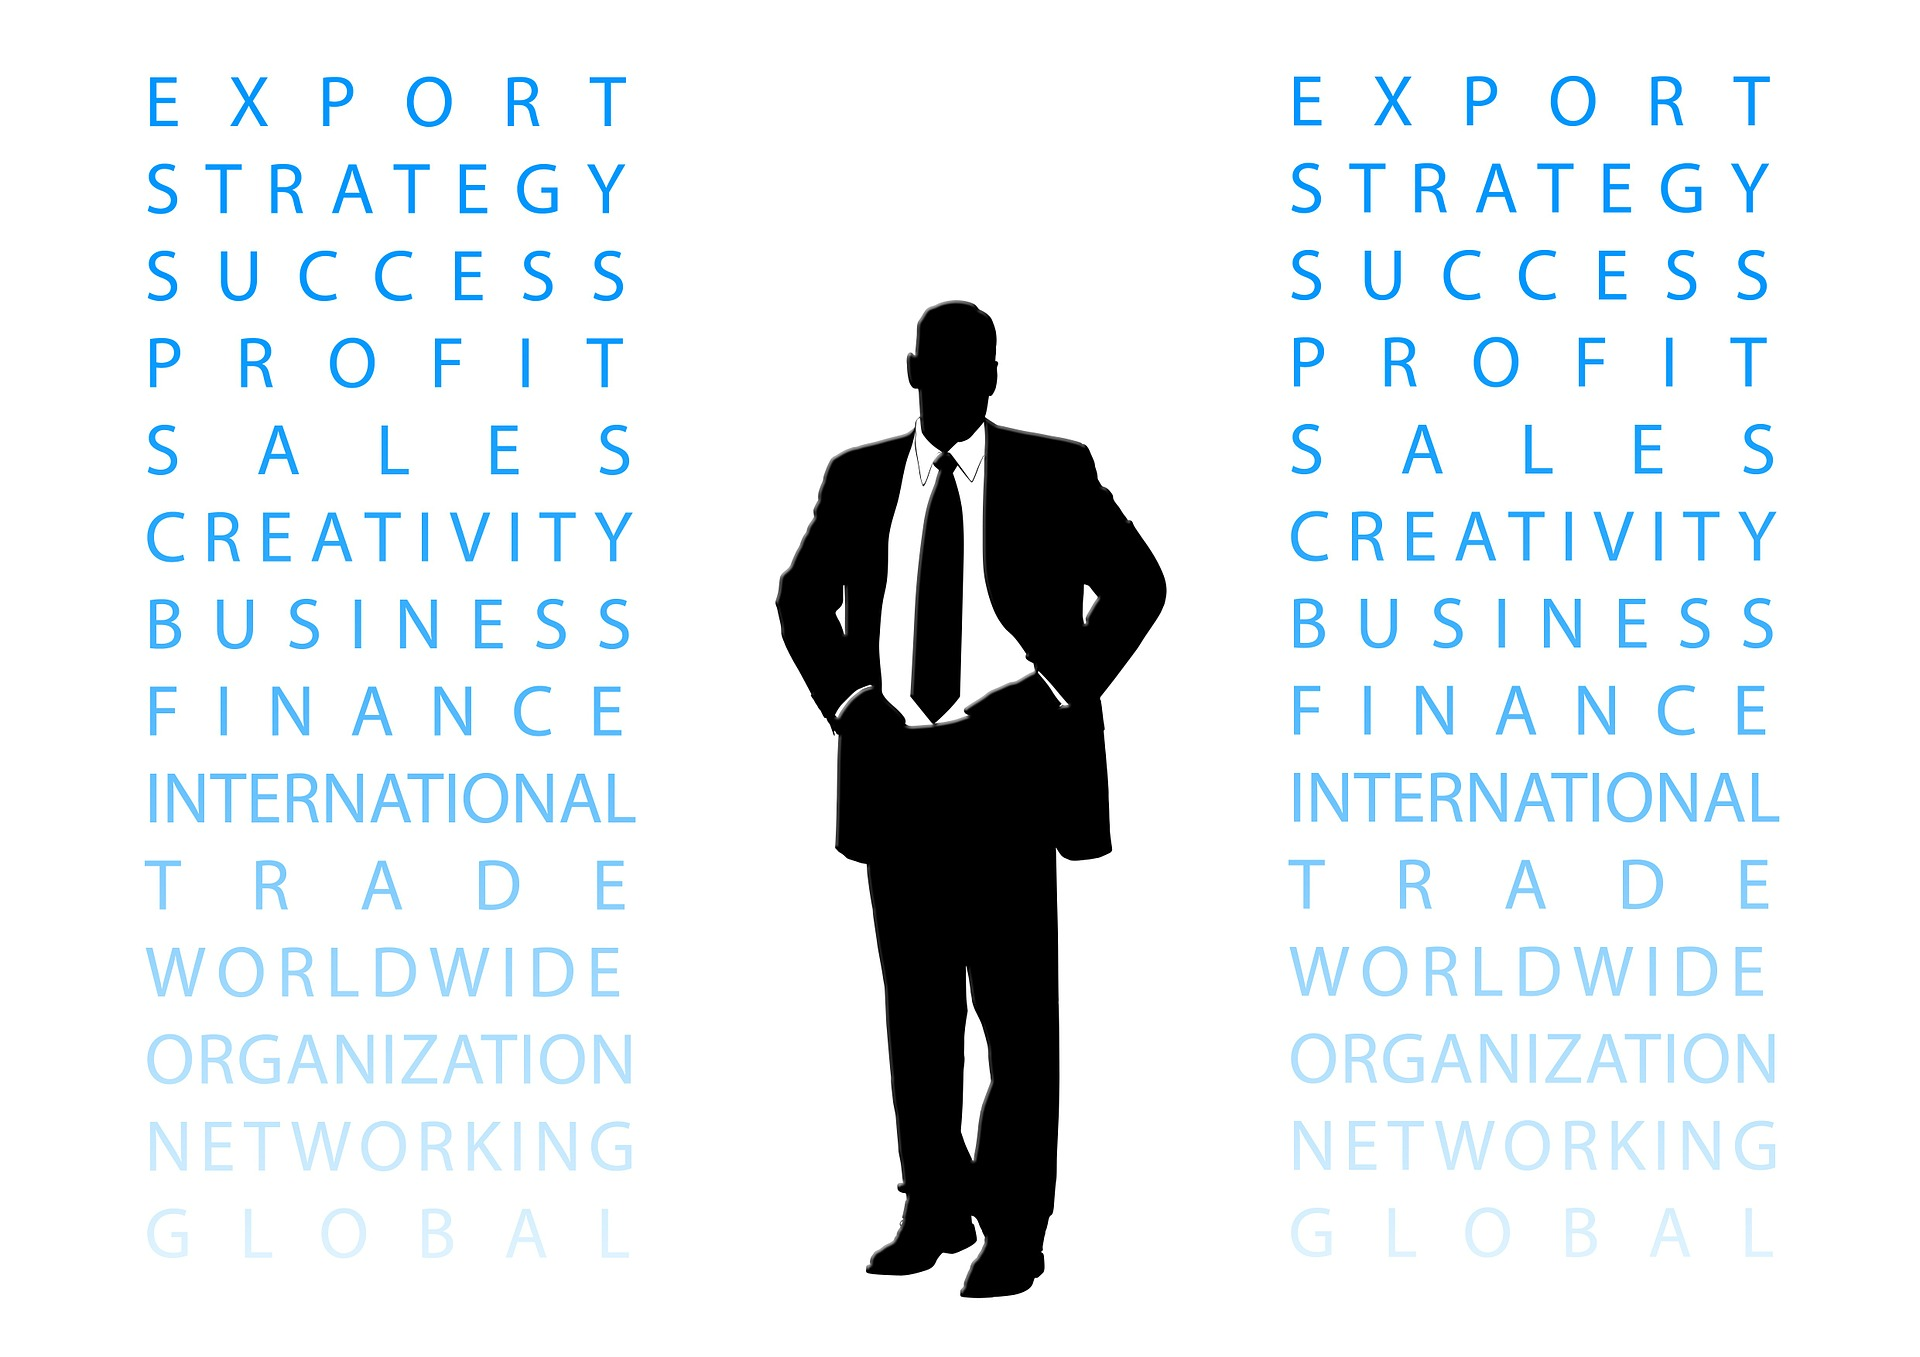 Exporting Challenges: Can You Lead With Confidence?